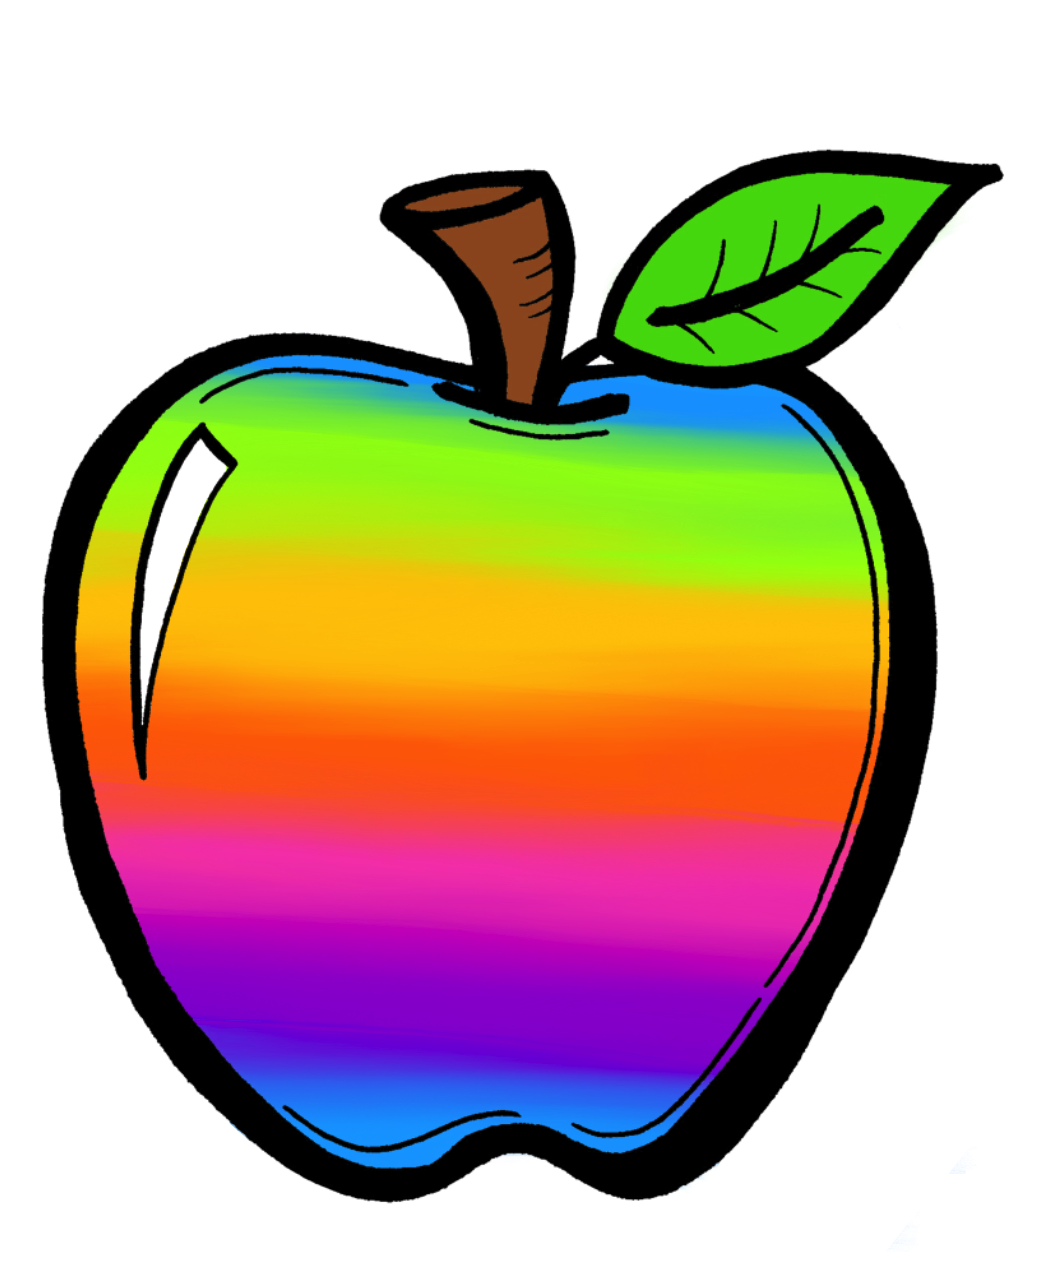 Back to school apple clipart jpg The Creative Chalkboard: June 2013 jpg